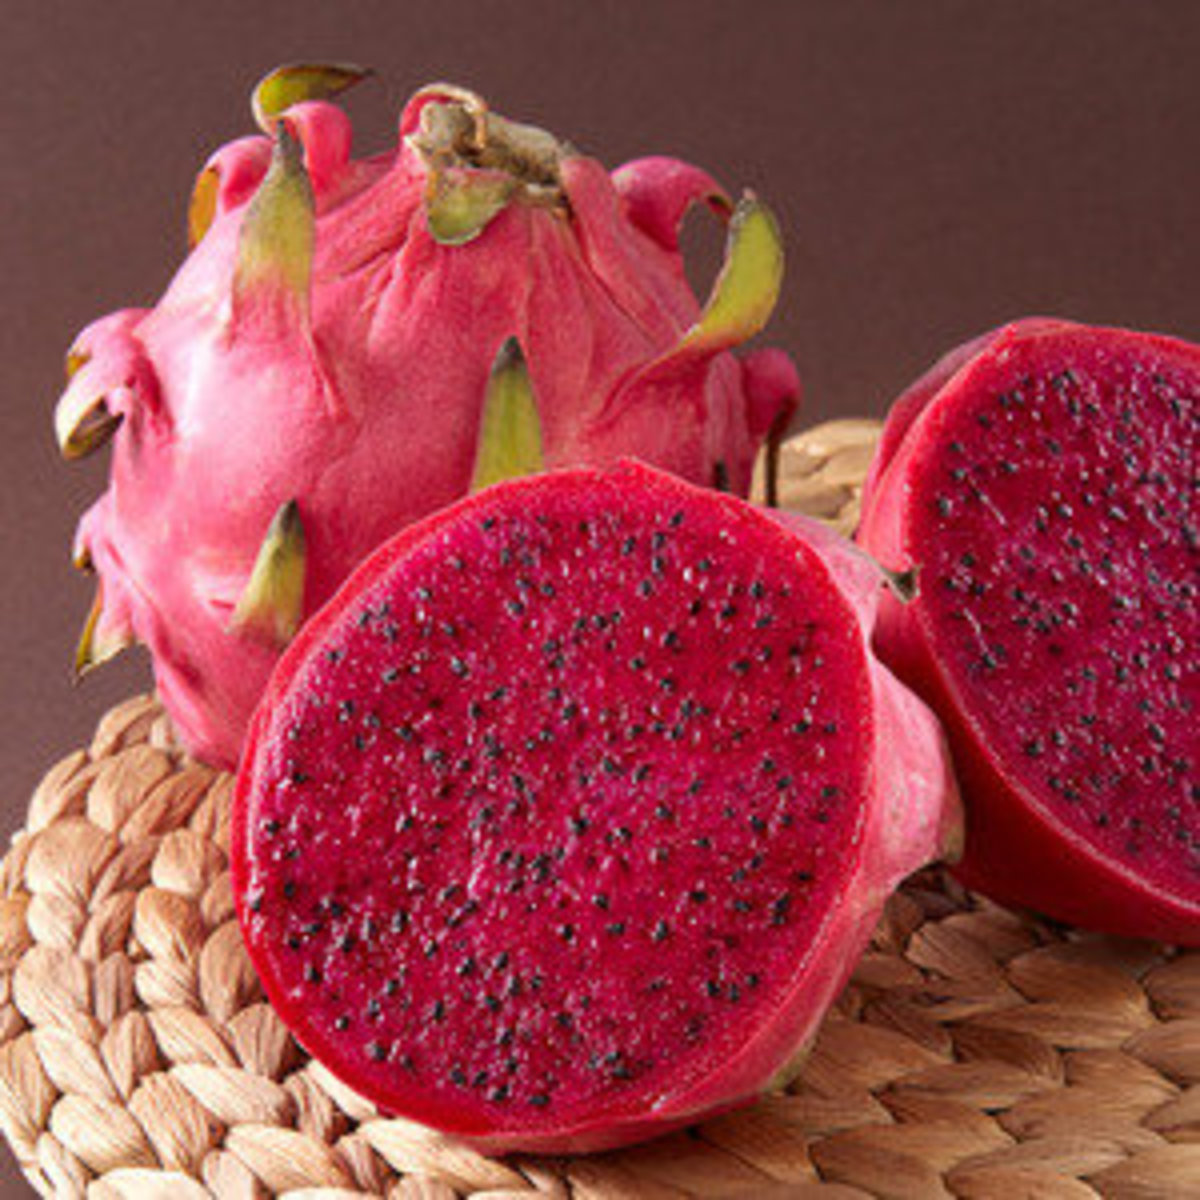 Vietnamese Red Flesh Dragon Fruit (2pcs/ 700g - 800g approx.)